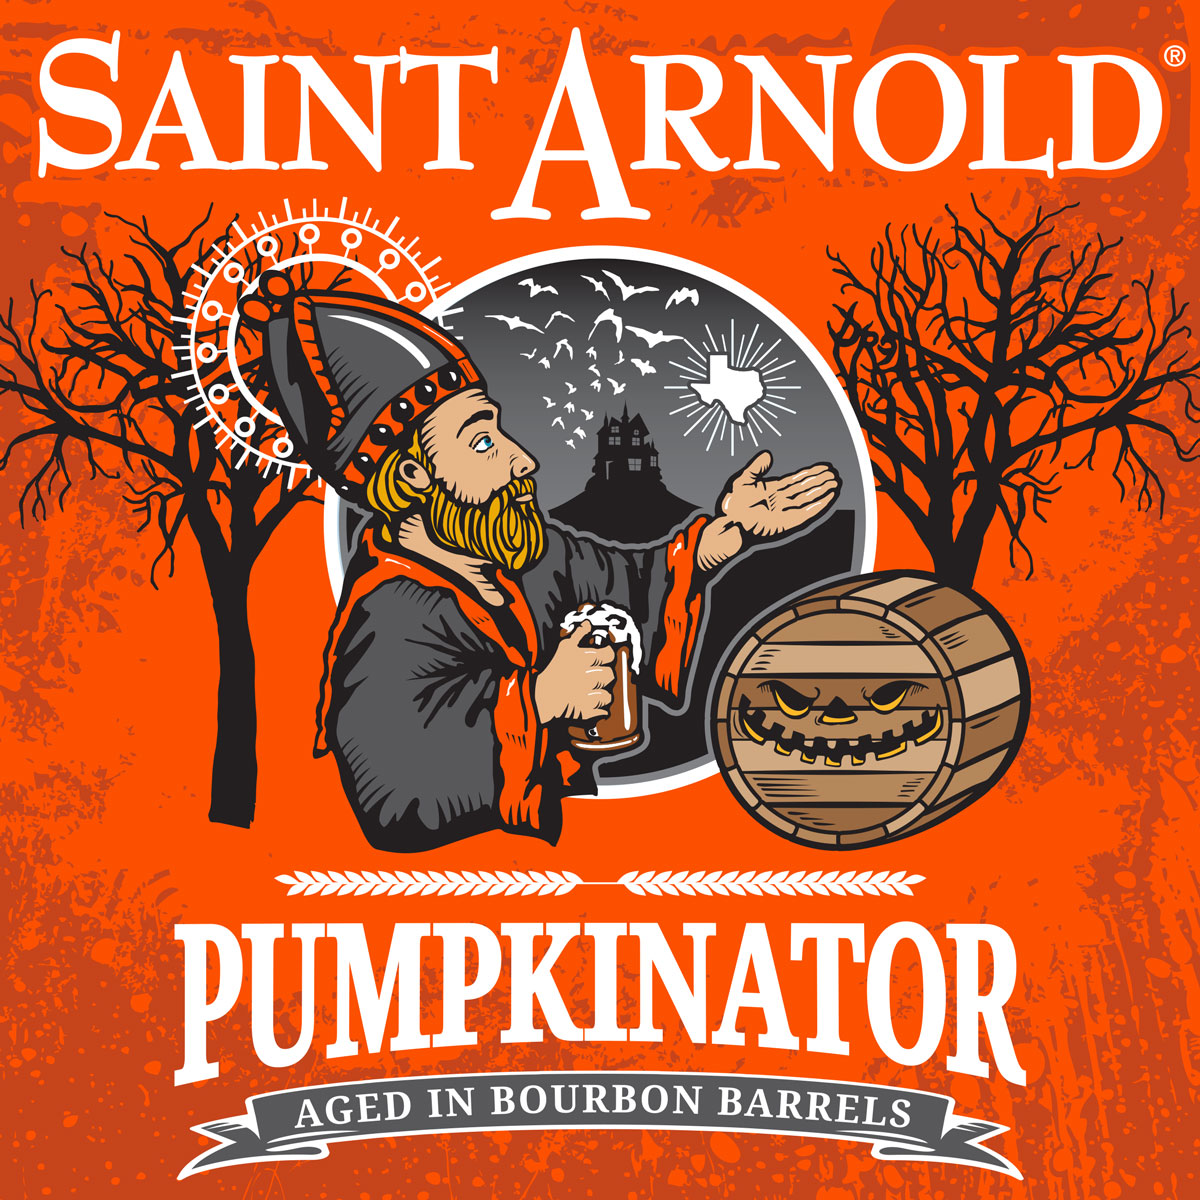 brand_image_pumpkinator_aged_in_bourbon_barrels_no_year